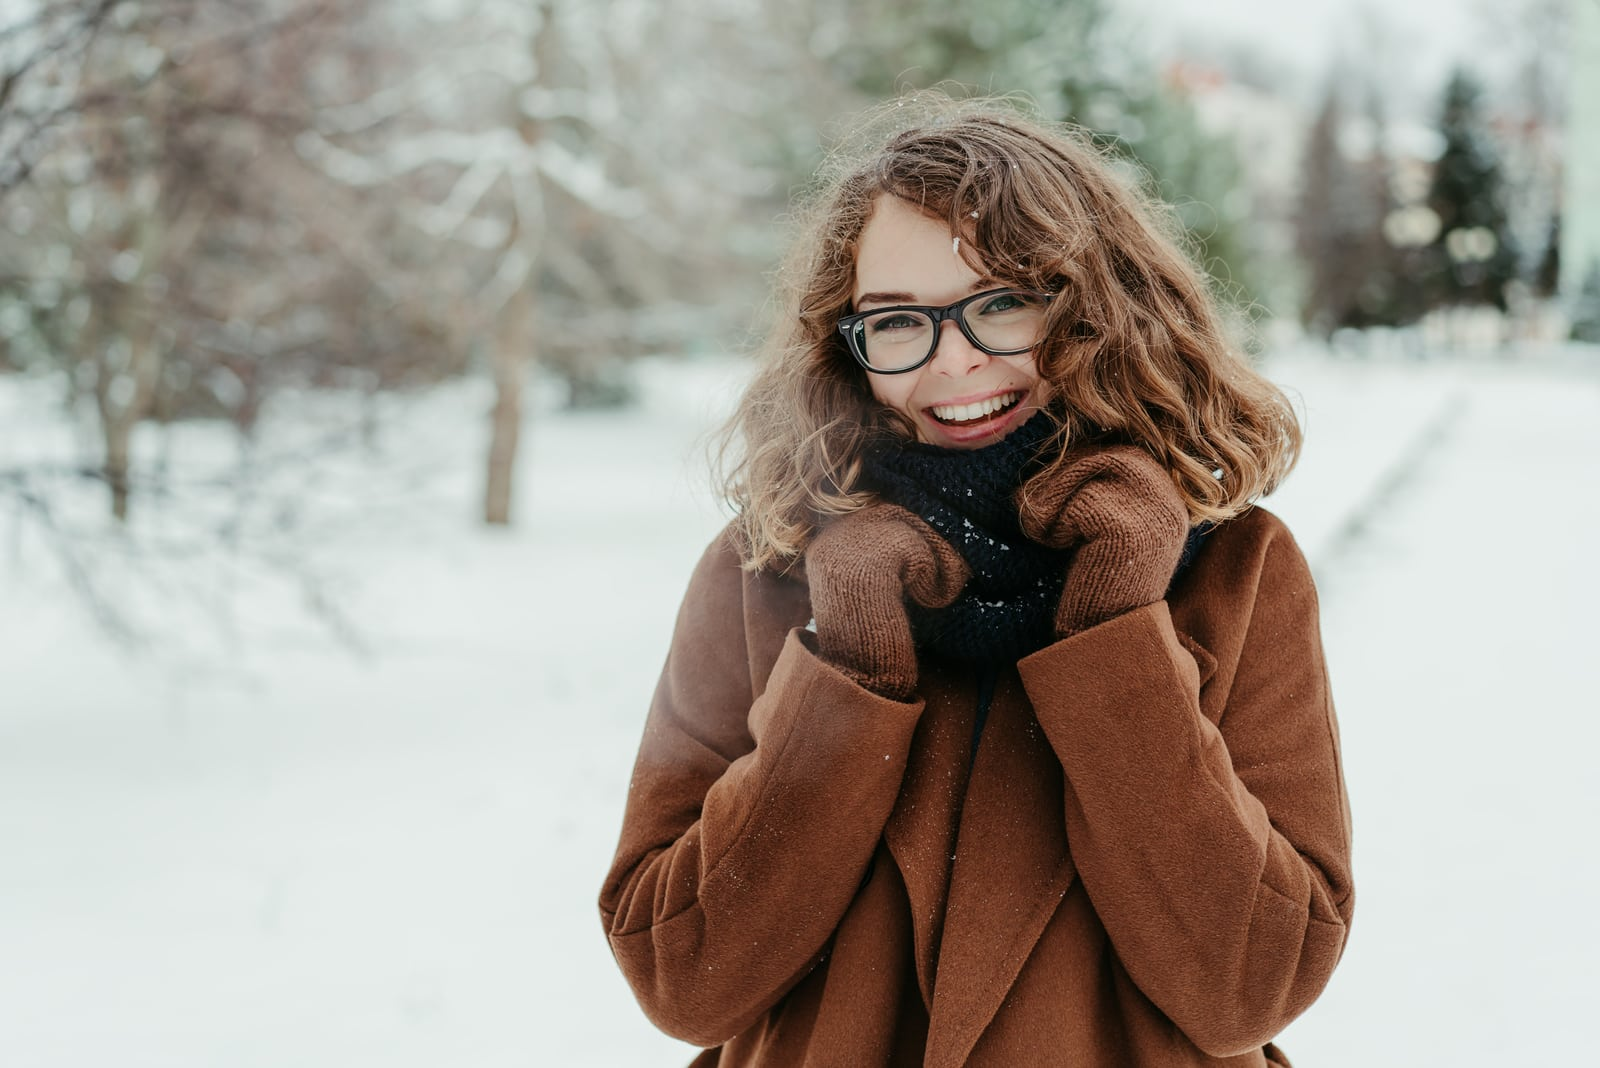 a smiling brunette enjoys a snowy idyll